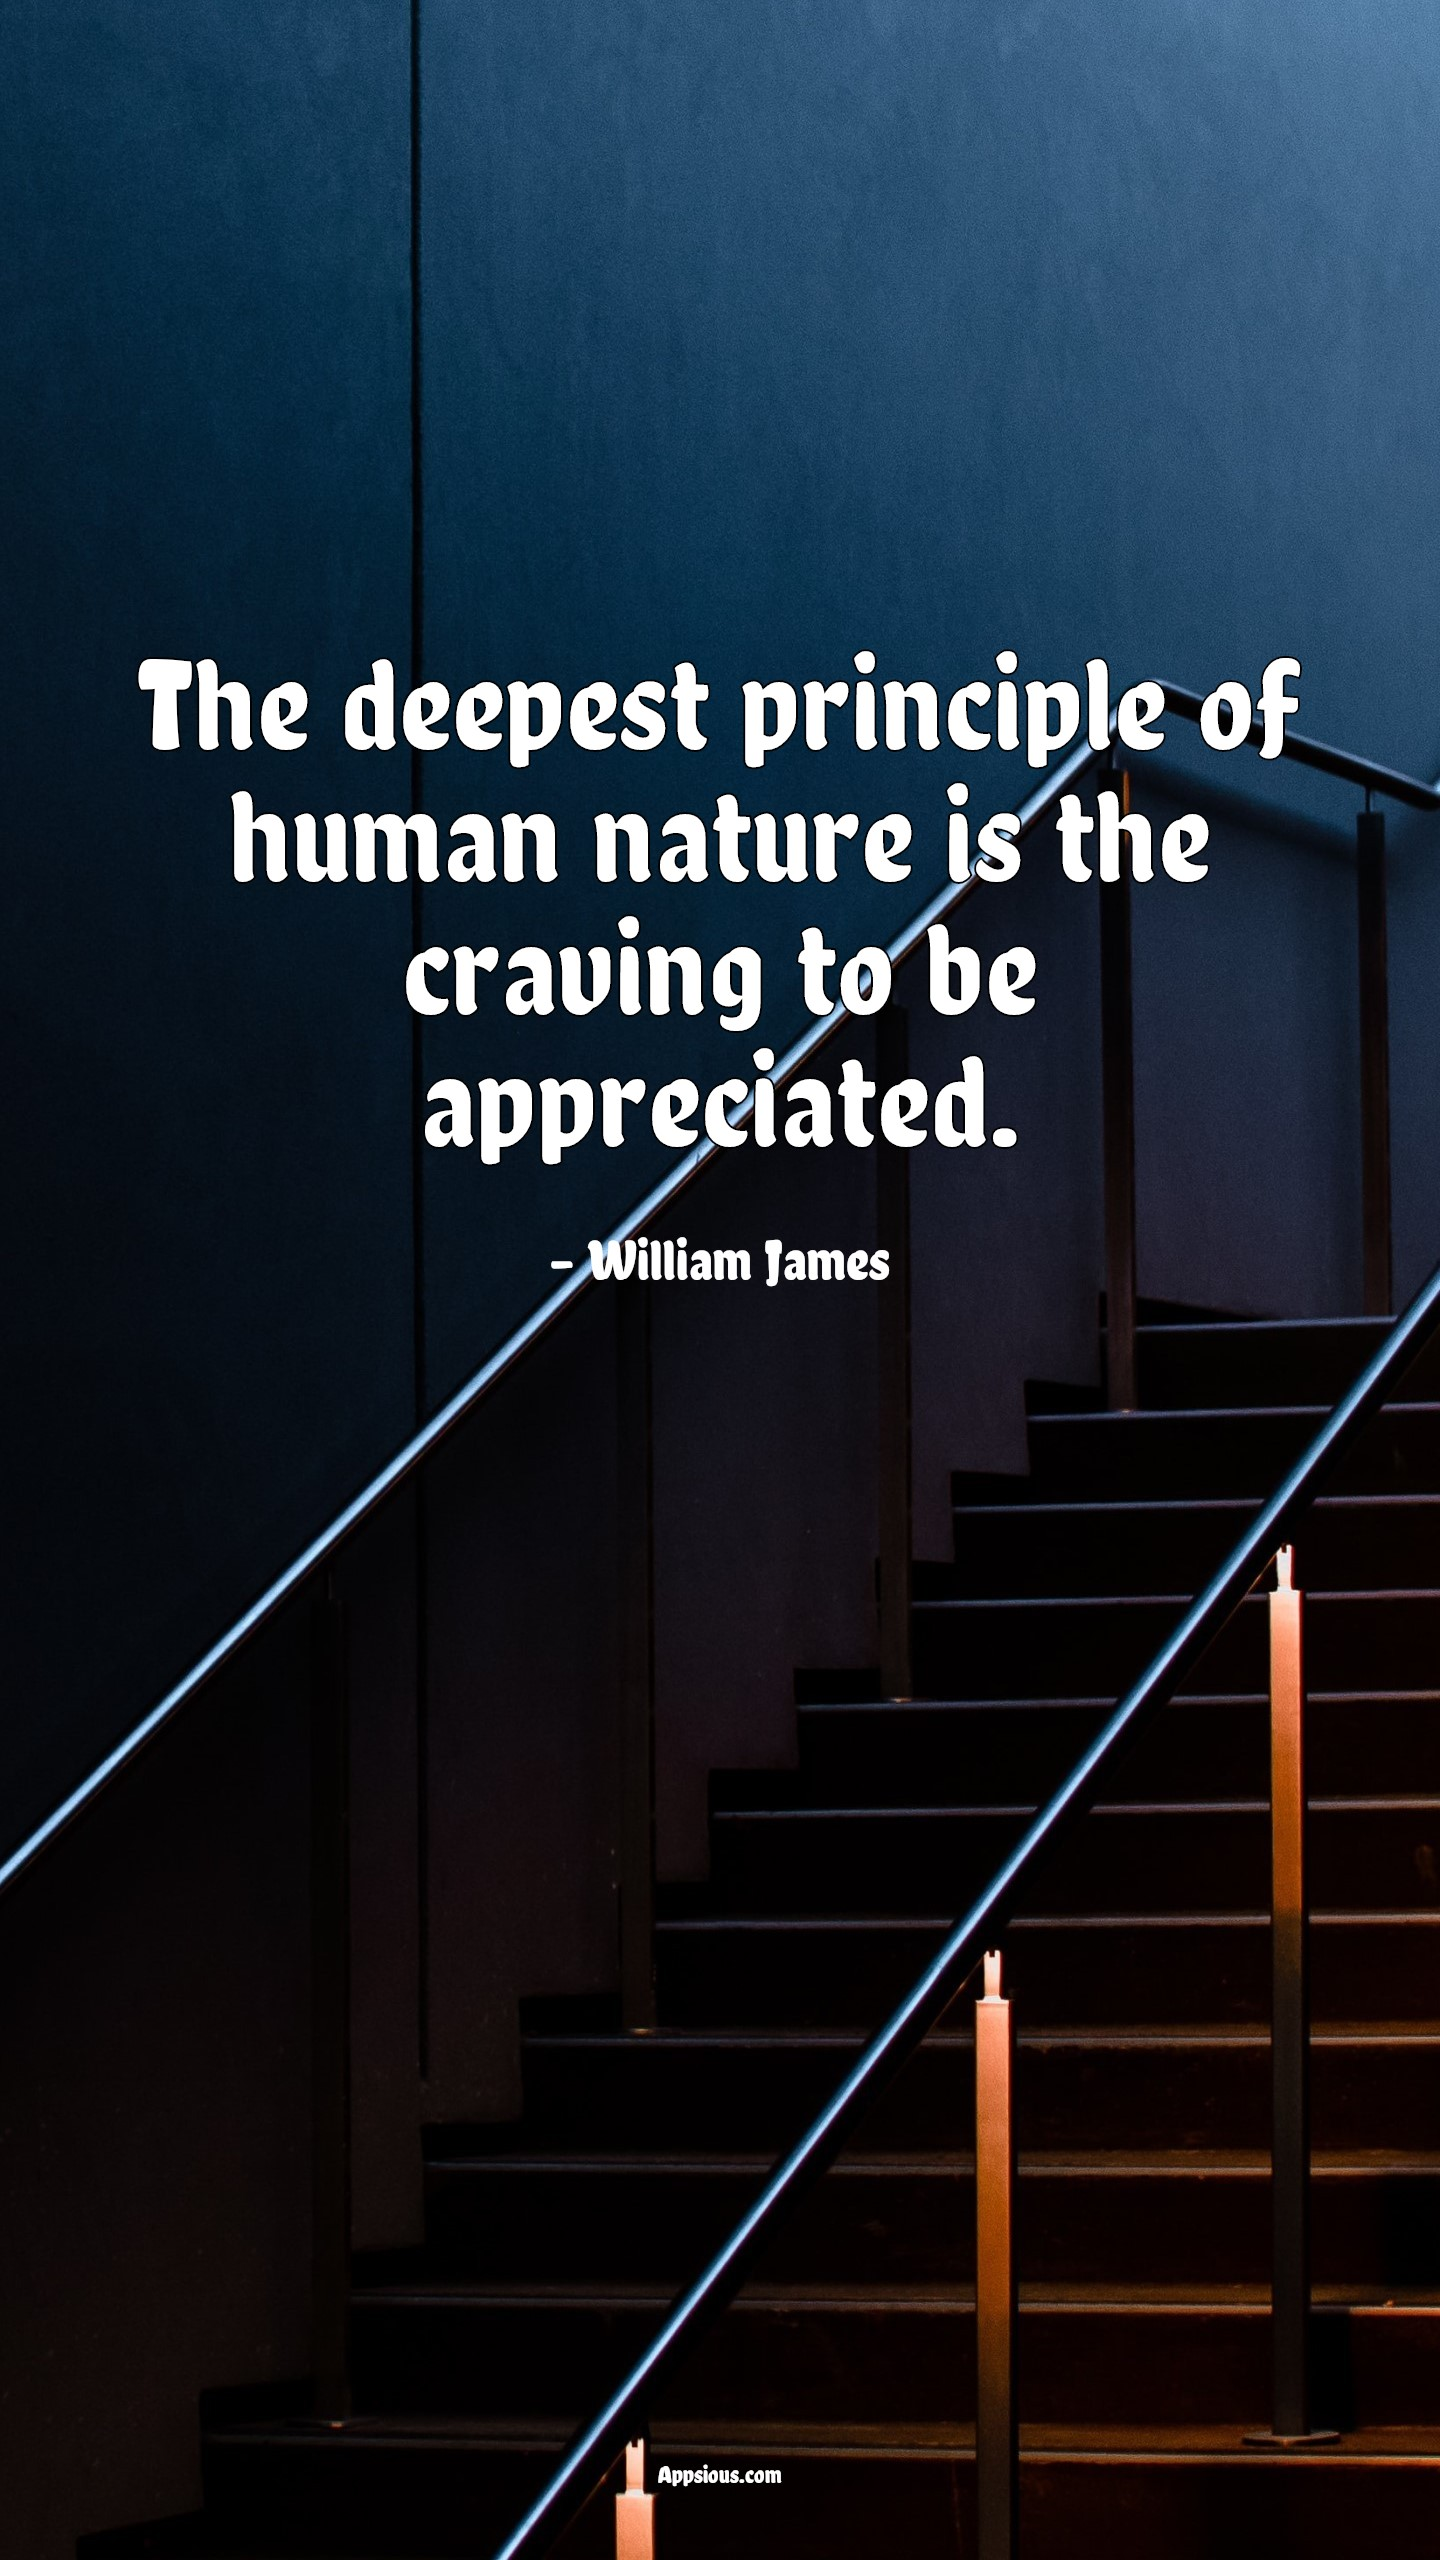 The deepest principle of human nature is the craving to be appreciated.